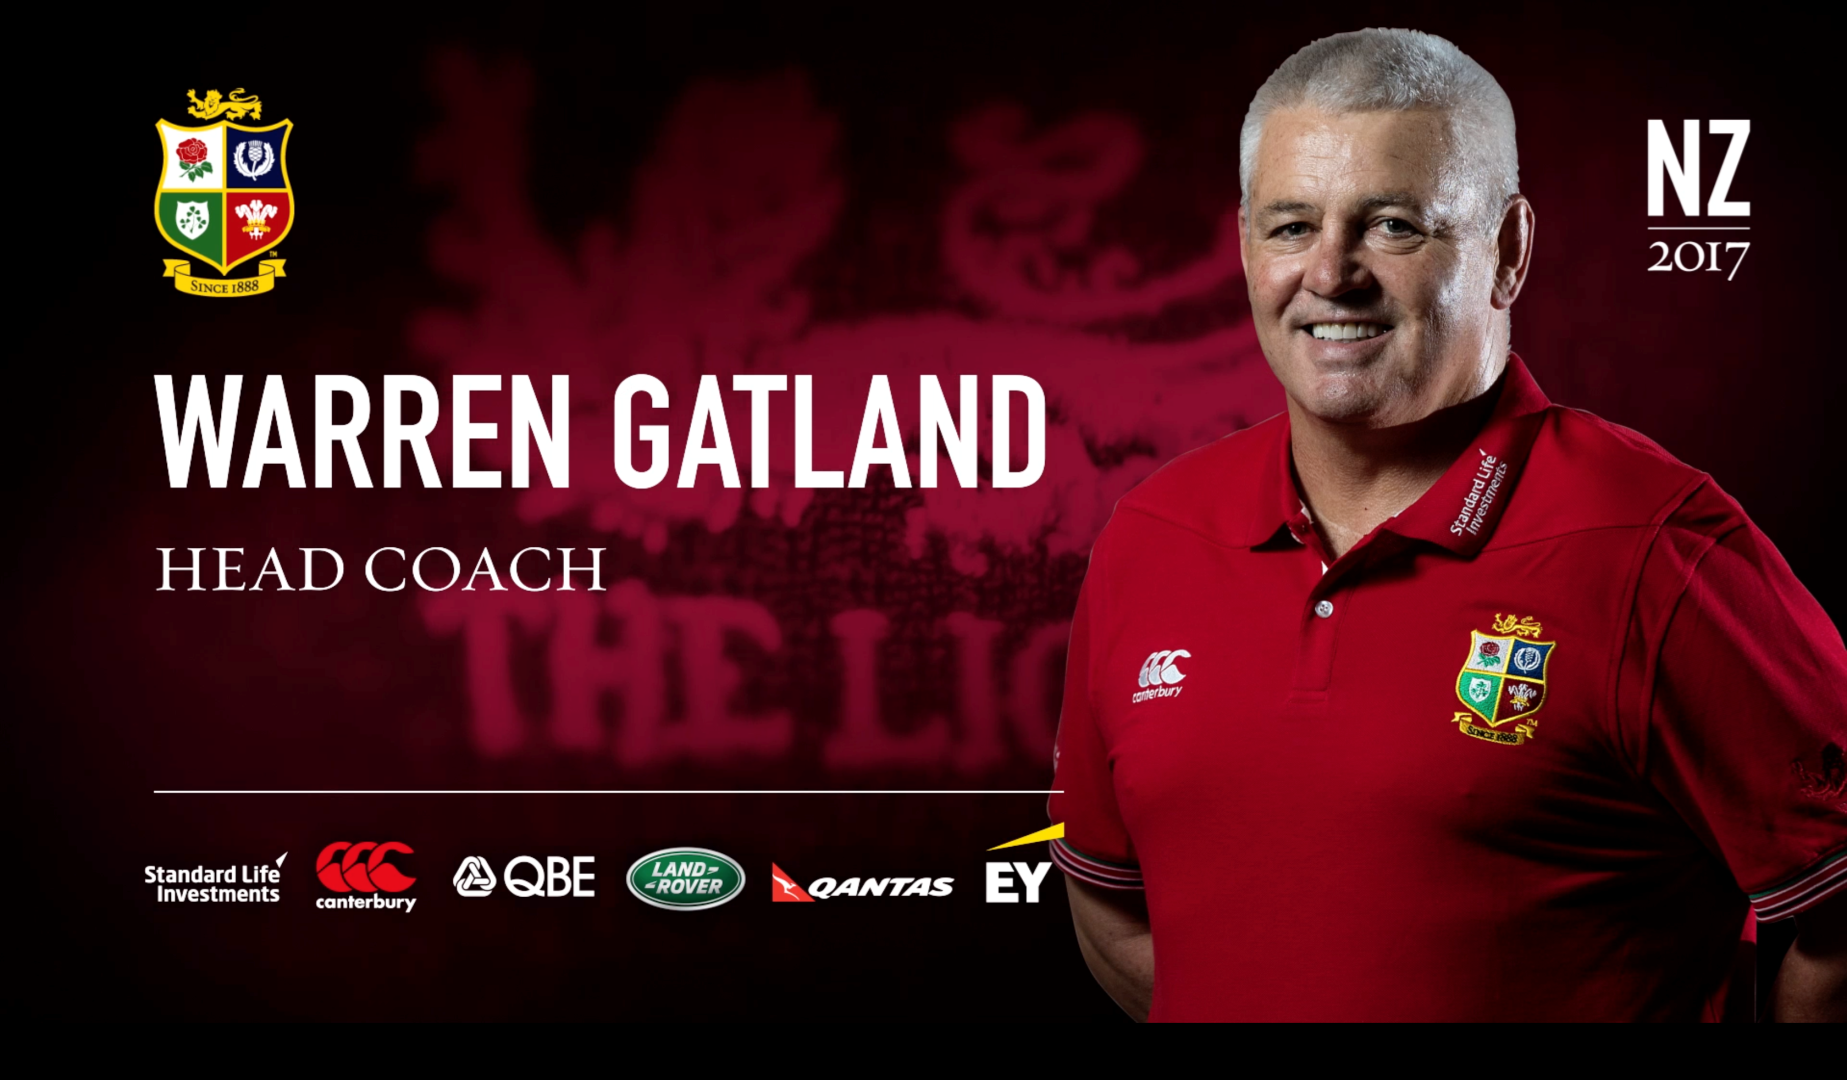 Warren Gatland appointed British & Irish Lions Coach